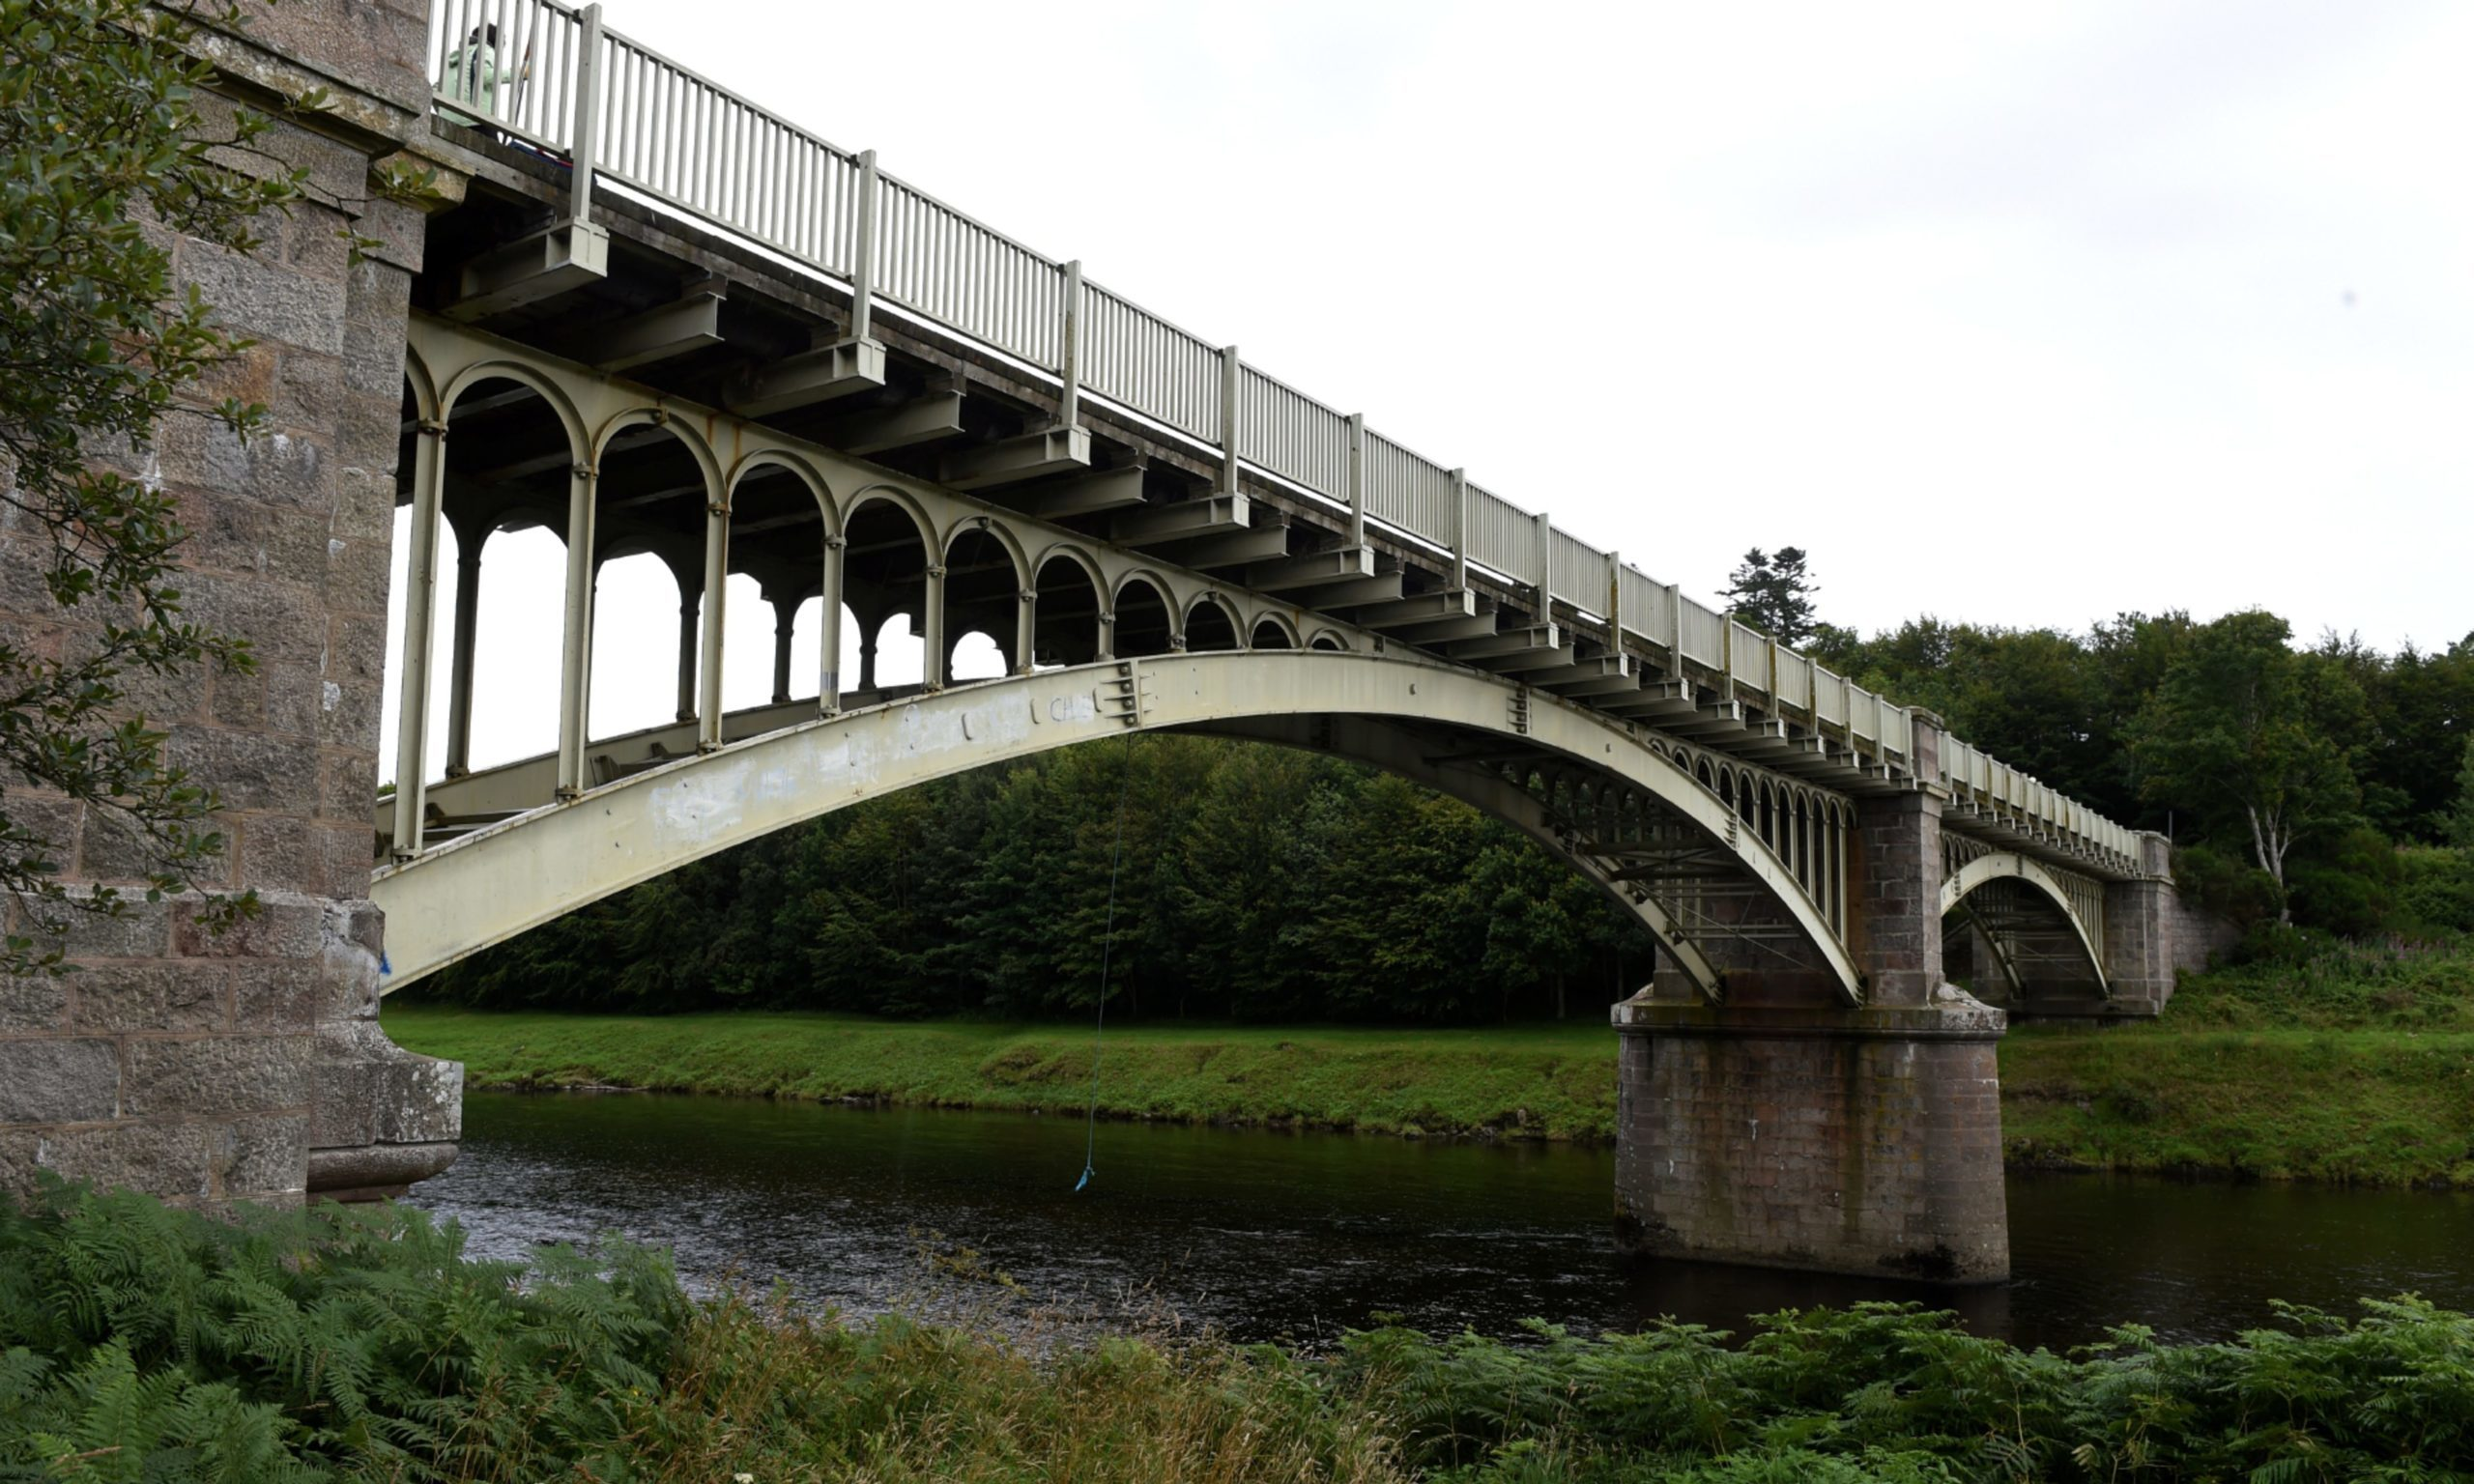 Park Bridge, linking Durris and Drumoak in Aberdeenshire, has been closed since February 2019.